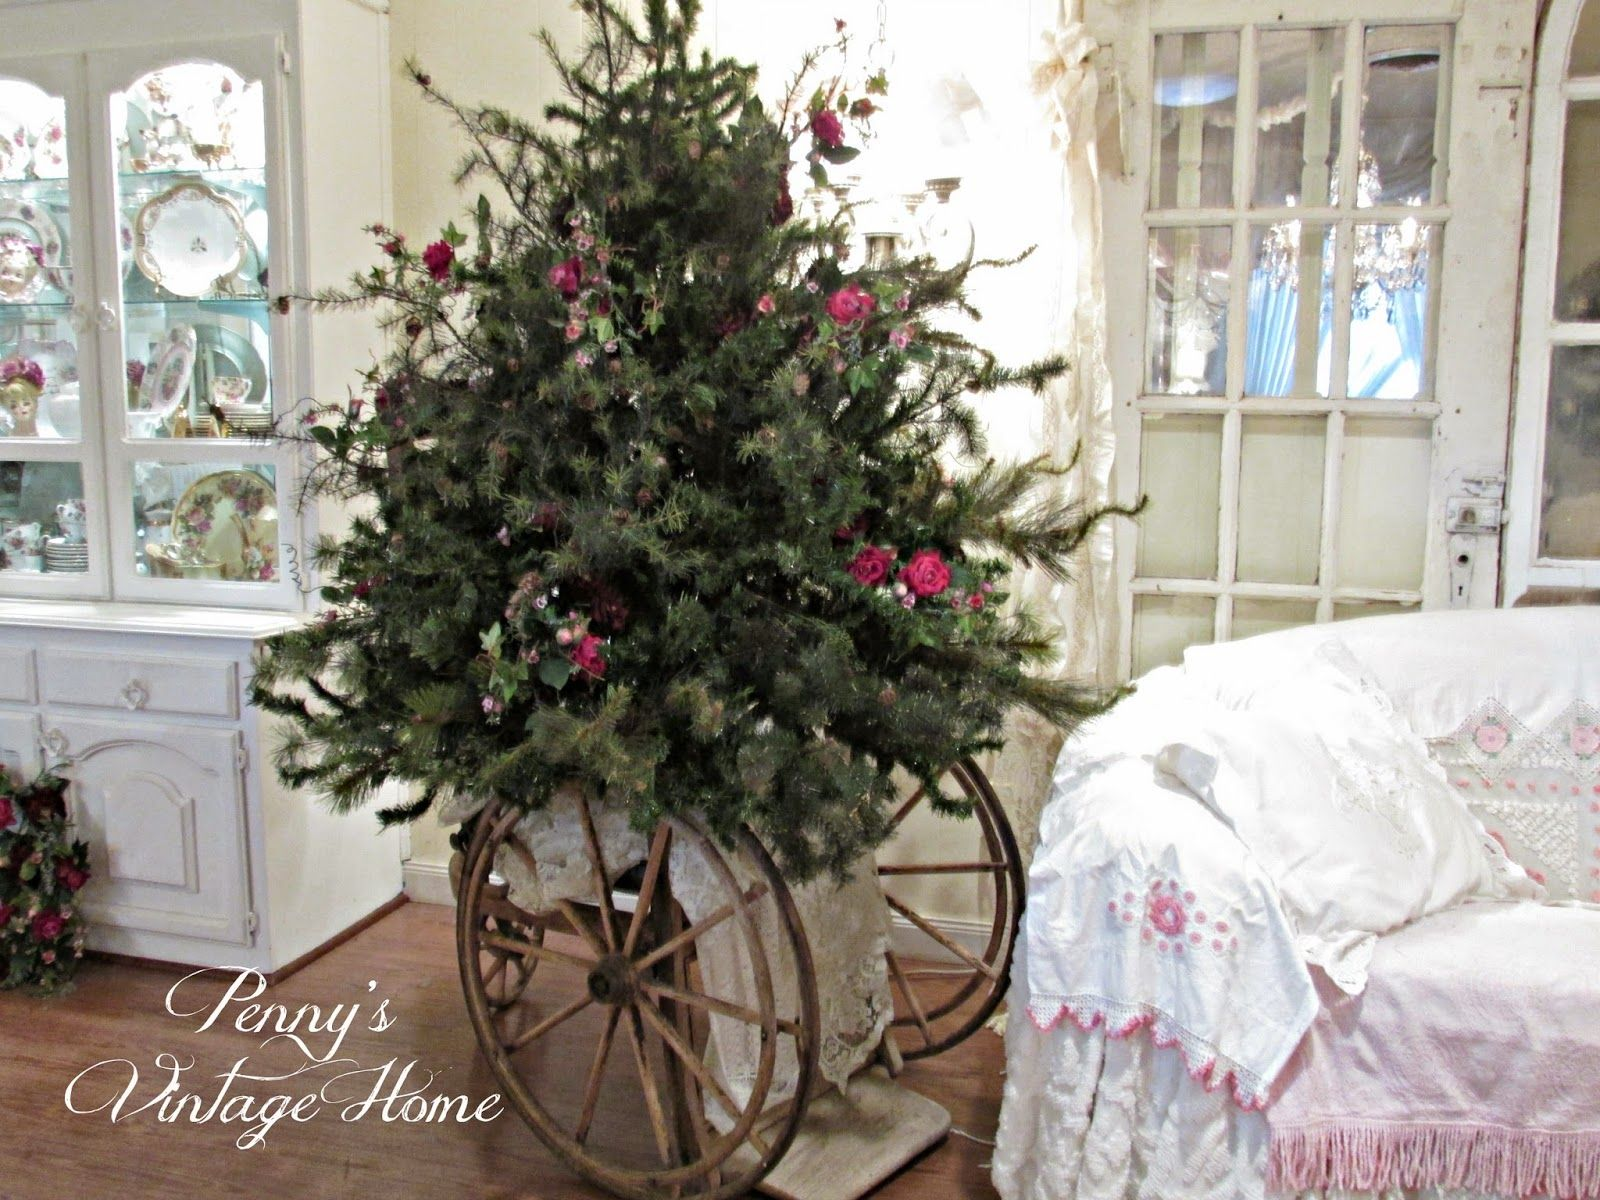 Penny's Vintage Home: How to Make a Short, Fat Christmas Tree ...